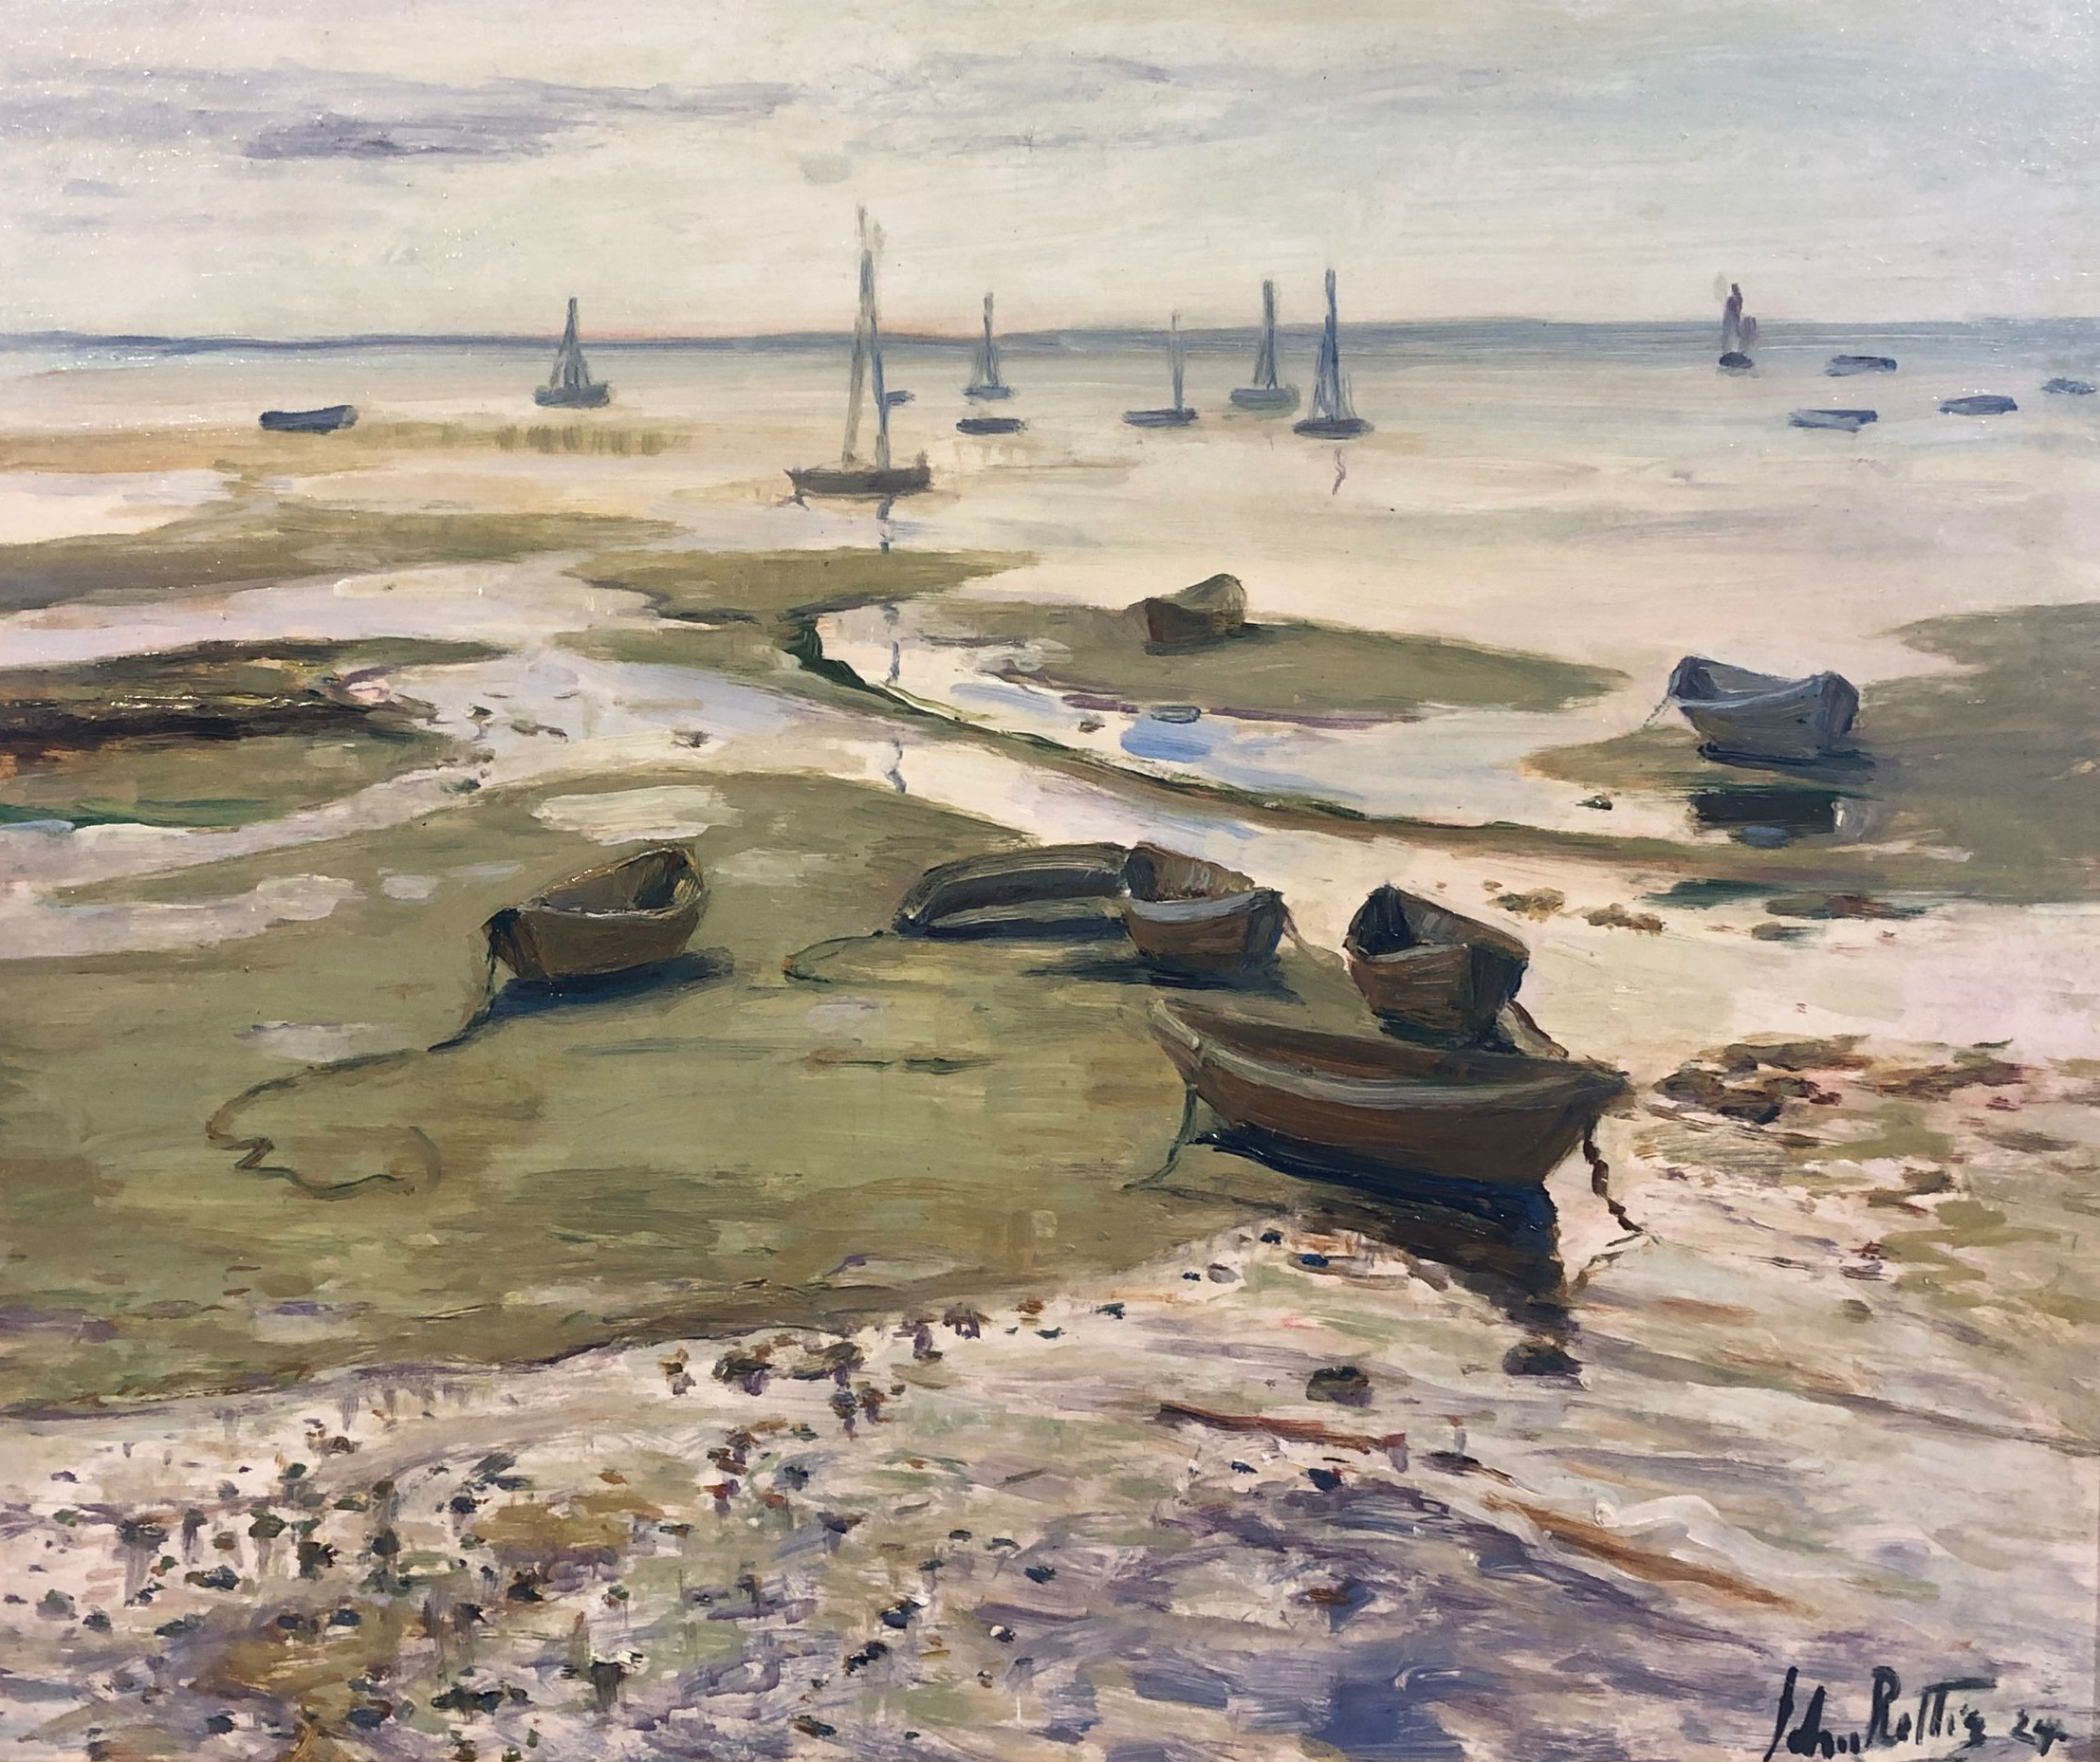 John Rettig,  Low Tide—Provincetown , 1924, oil on board. Image courtesy of the Cincinnati Art Galleries, 14115.